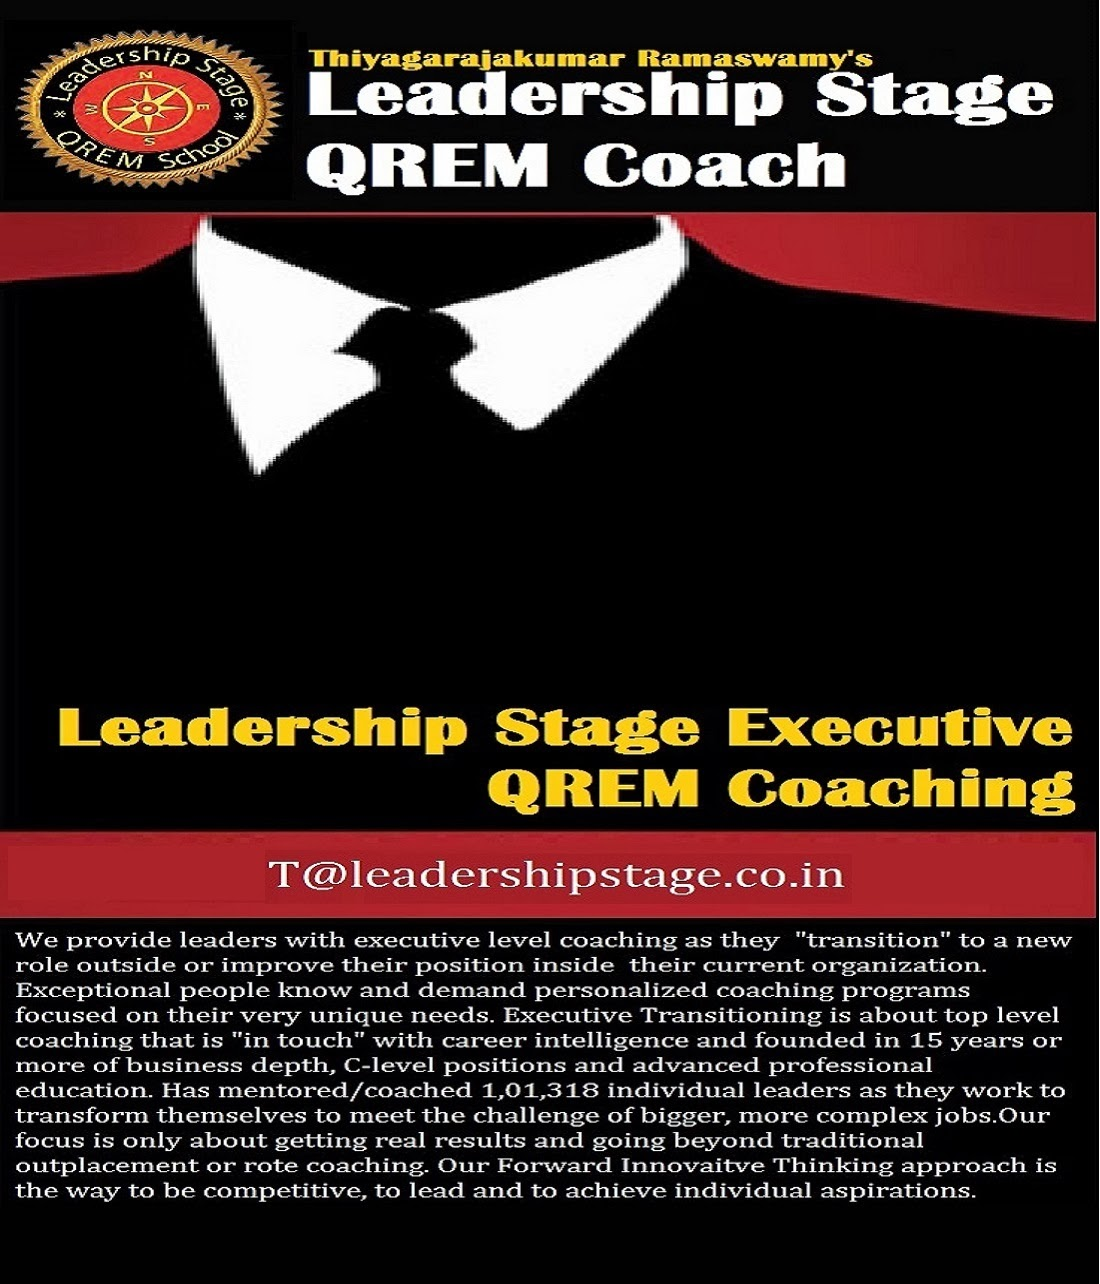 Leadership Stage Executive QREM Coaching